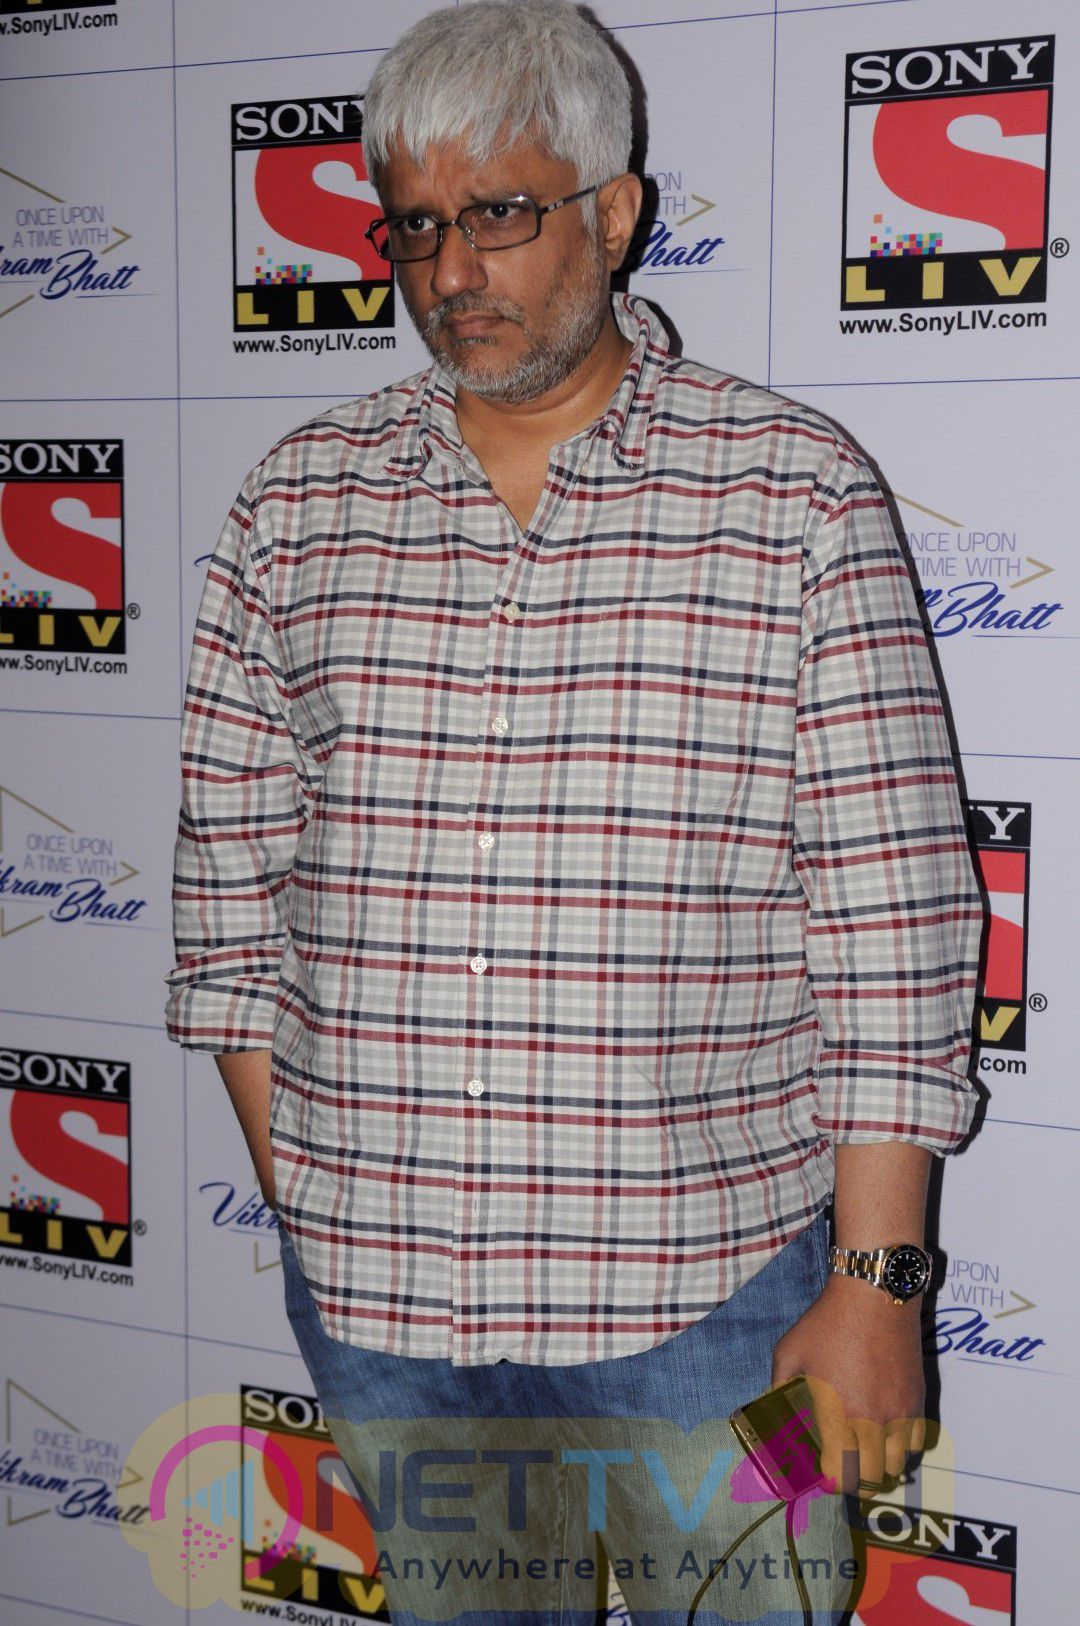 Sony Liv & Vikram Launch New Show Once Upon A Time With Vikram Bhatt Stills